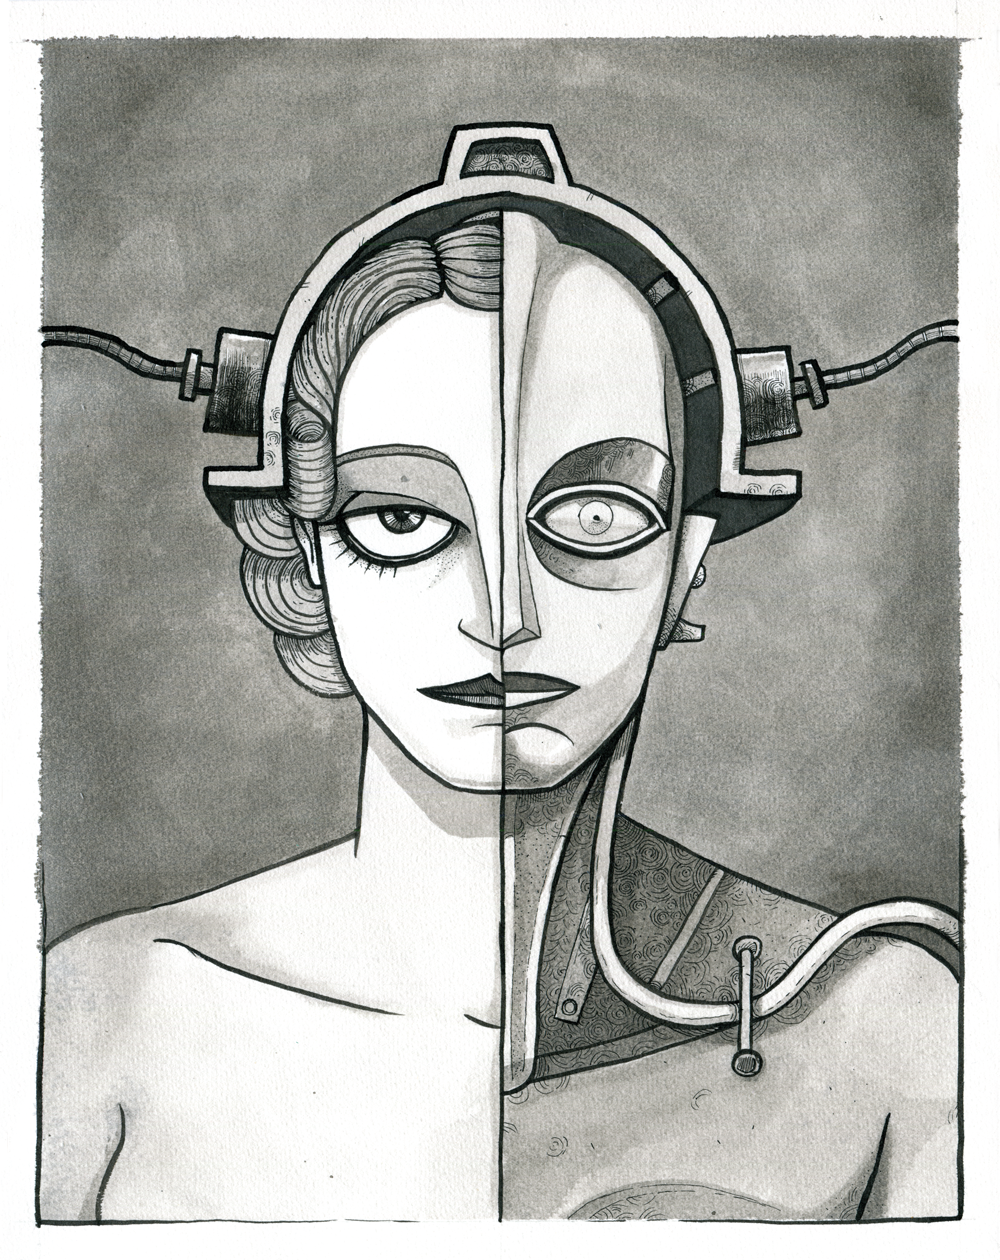 An image of Maria and the robot from Metropolis